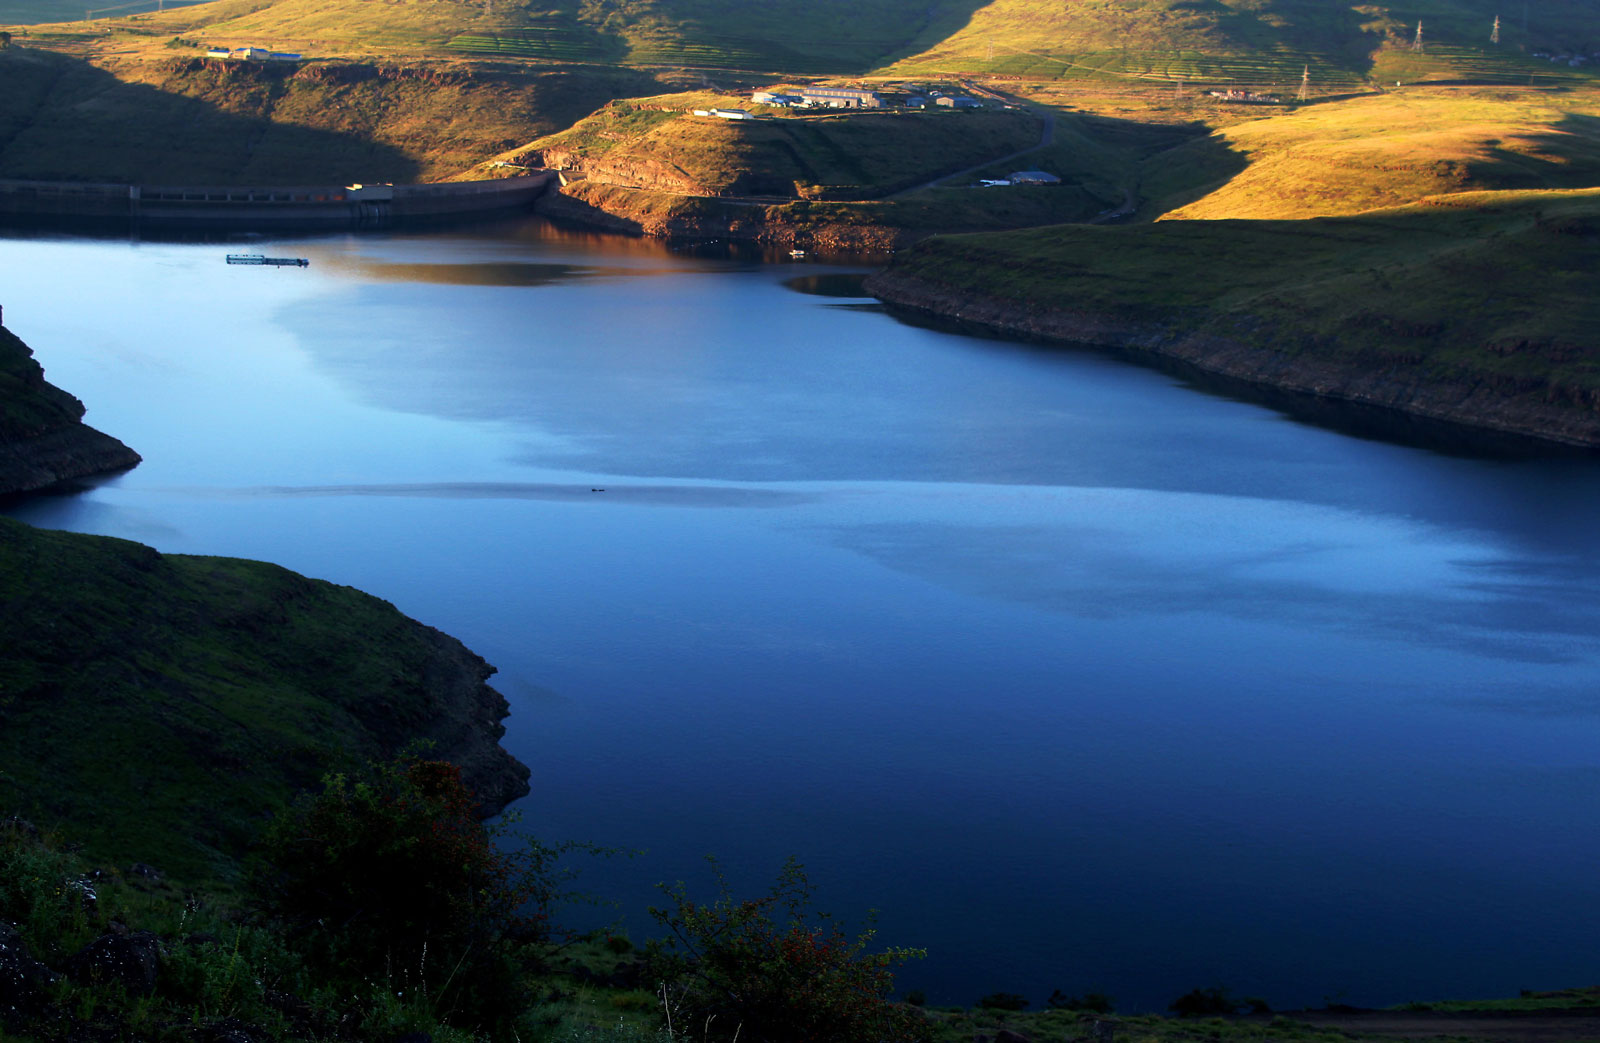 Arial view of a large body of water surrounded by mountain hills. The Katse dam can be see in the far distance with the Lesotho Highlands Development Authority offices above it.